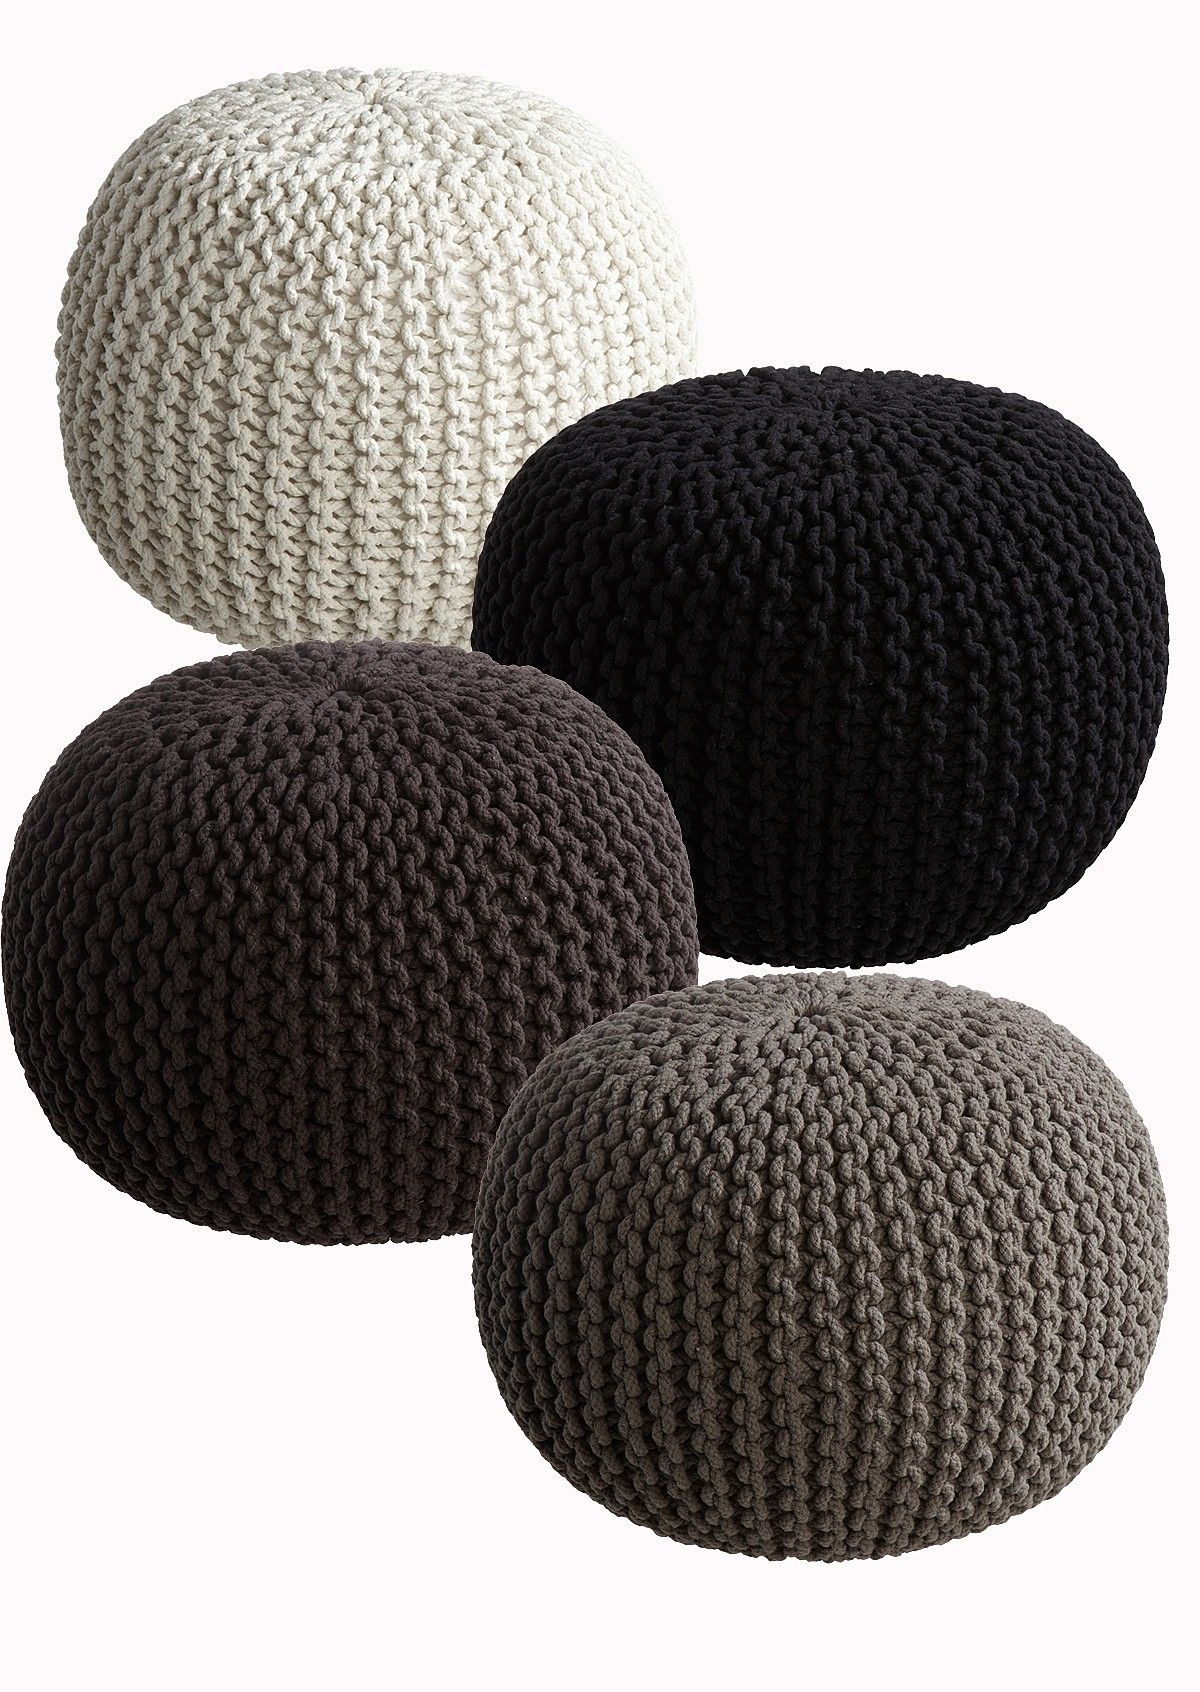 Footstool made out of rope. Black or white for the living room pls